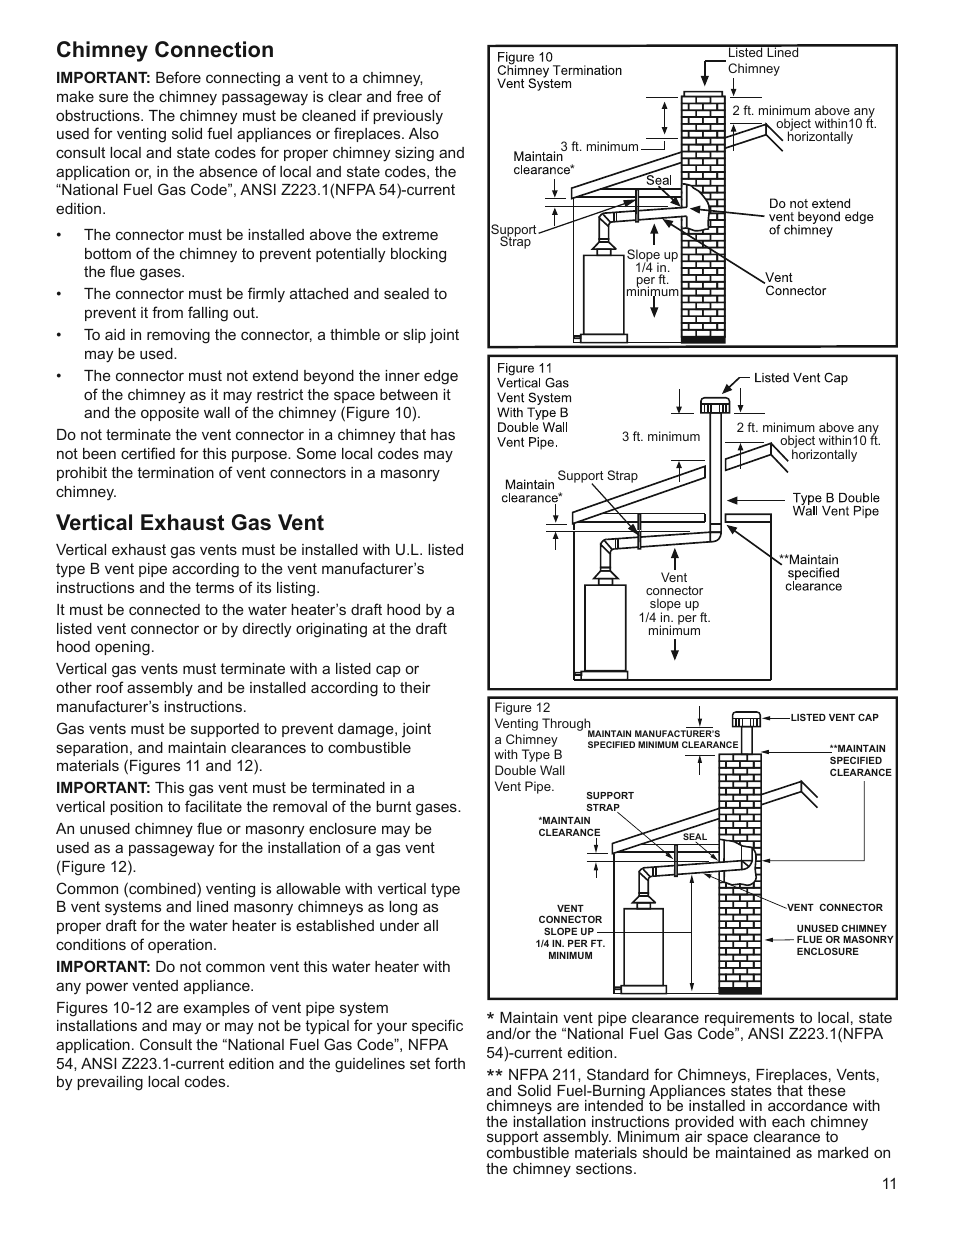 whirlpool washing machine service manual pdf